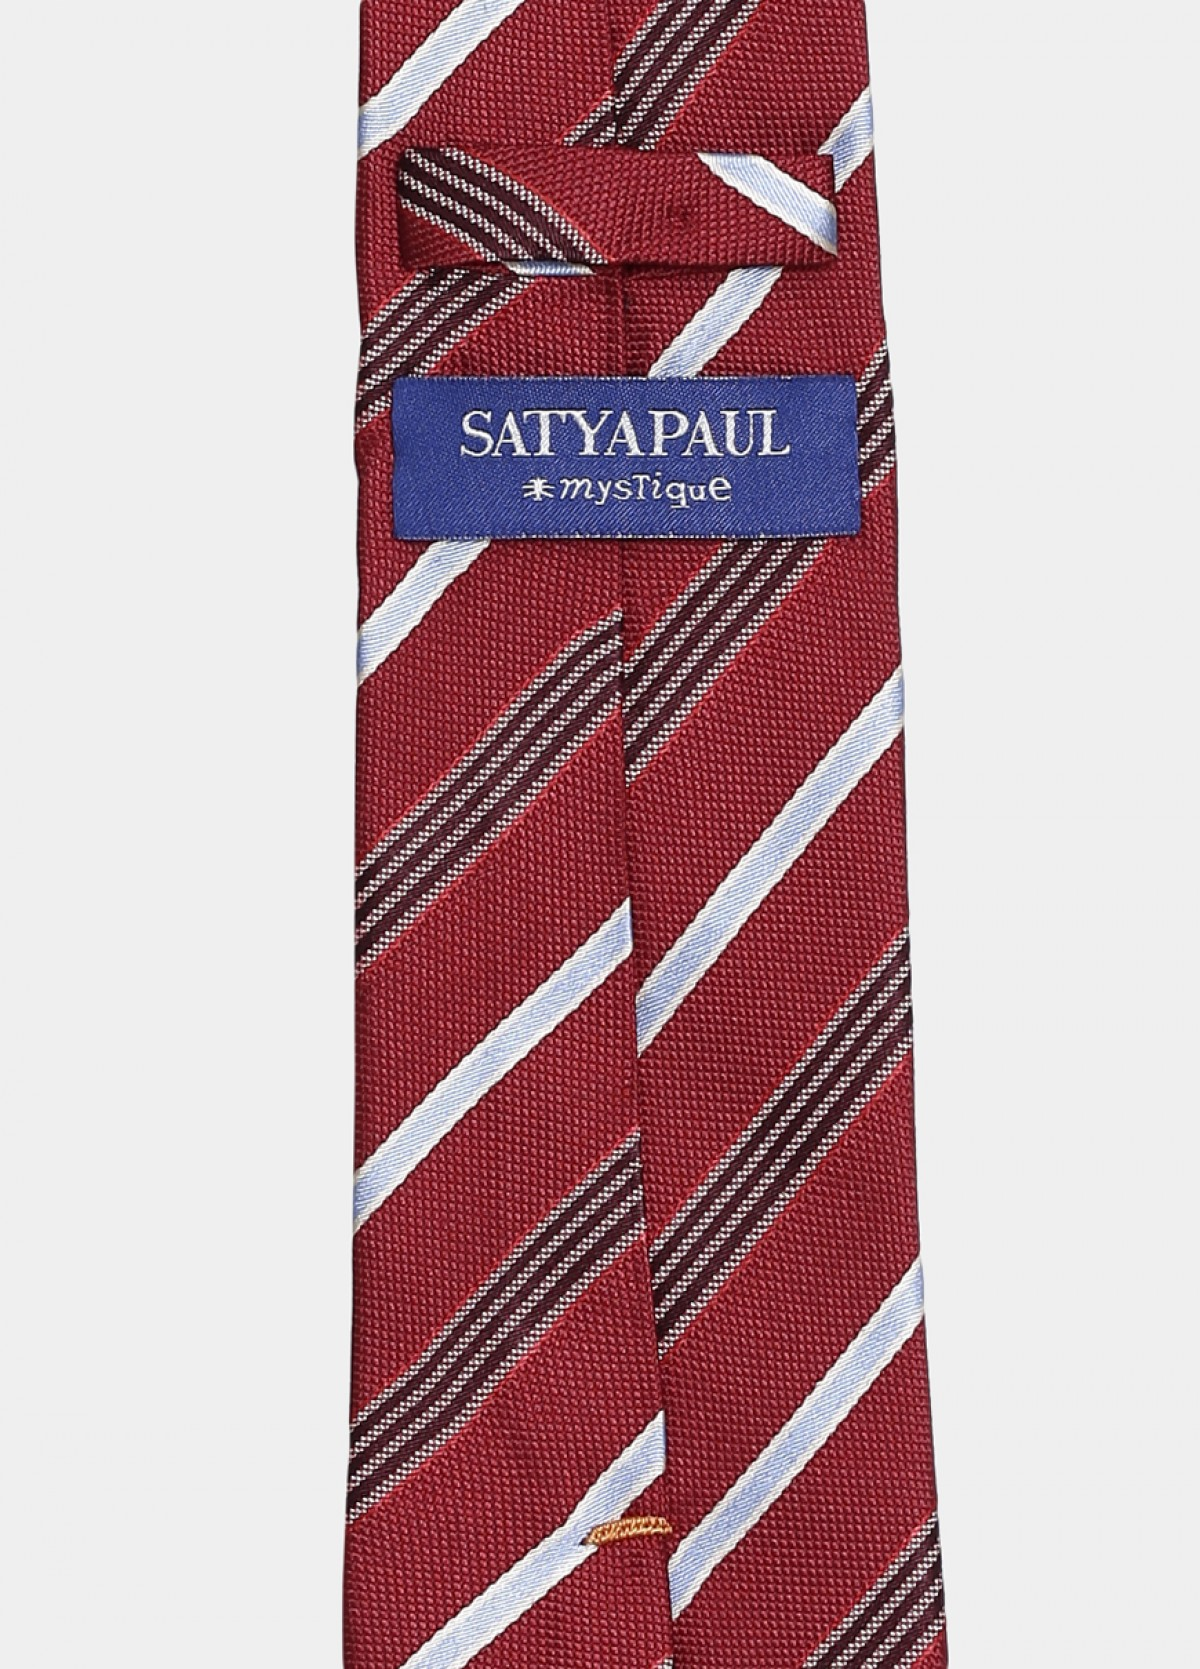 The Red Formal Silk Stain Resistant